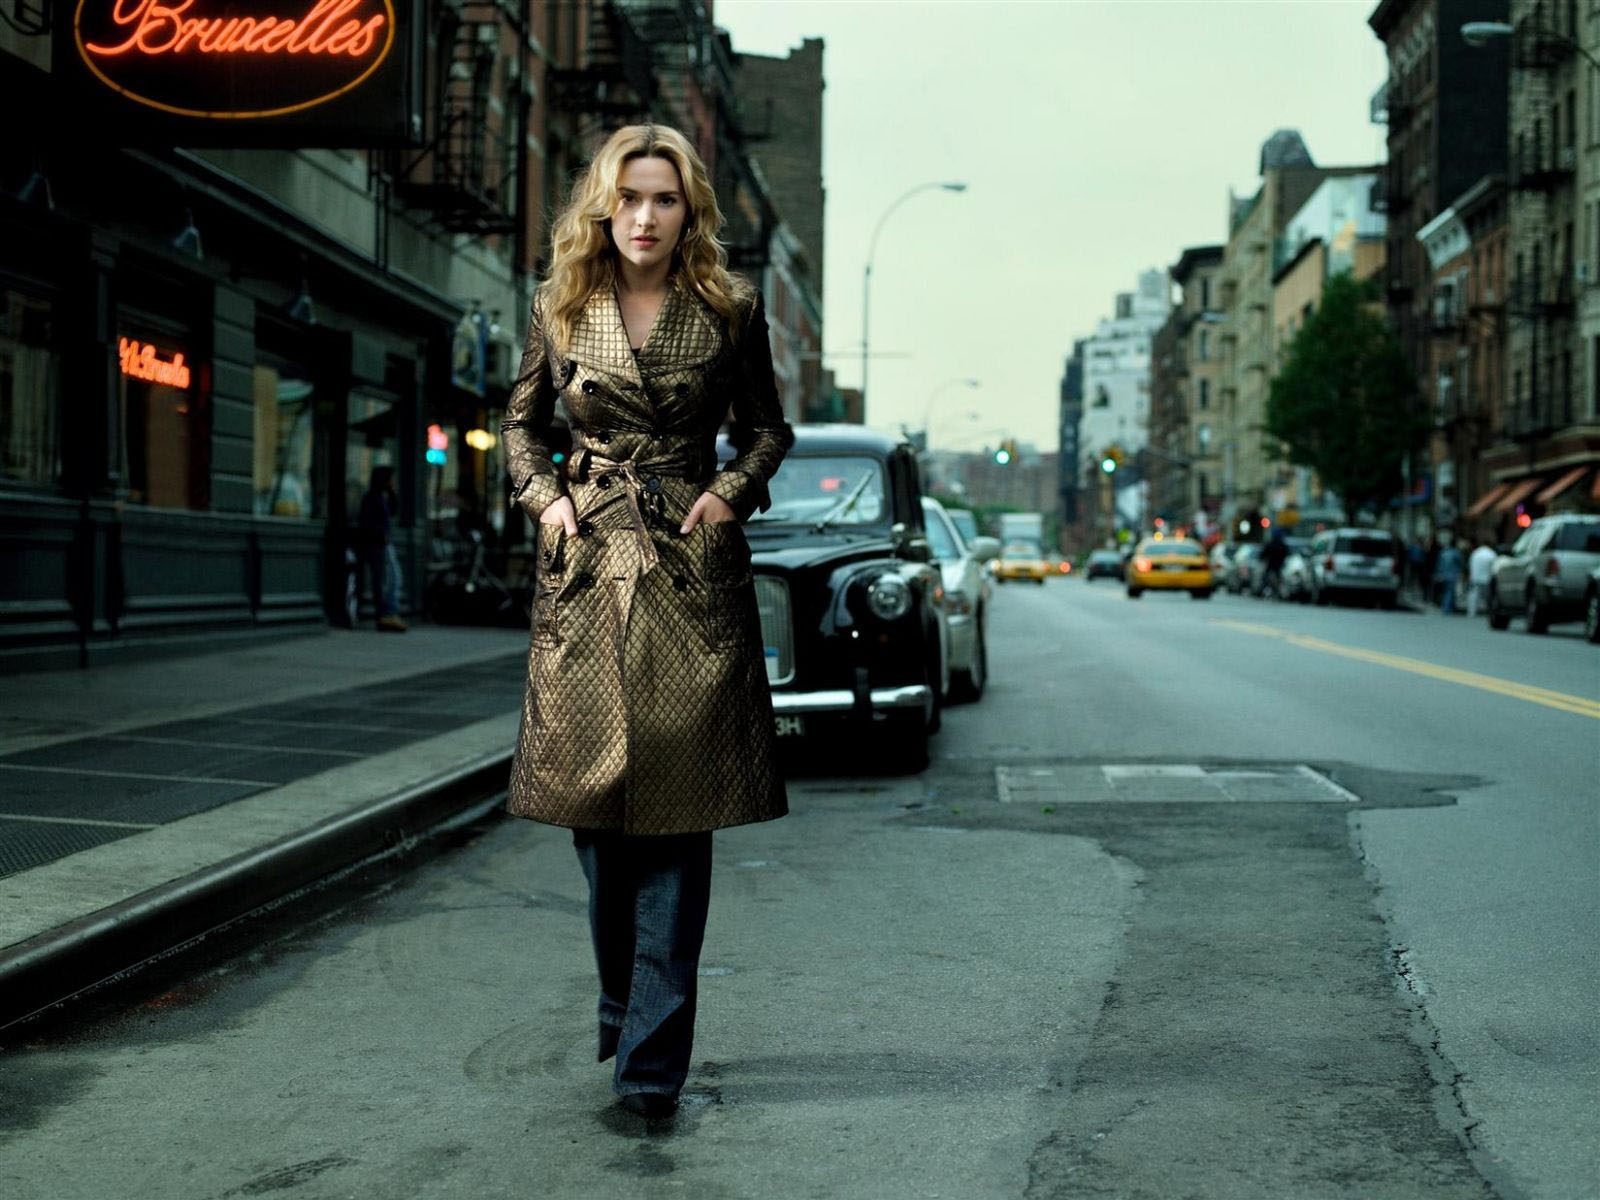 http://1.bp.blogspot.com/-xMyopUSX3Io/T36mlXunywI/AAAAAAAATQY/VpLKKPFFKsE/s1600/kate-winslet+on+the+road.jpg